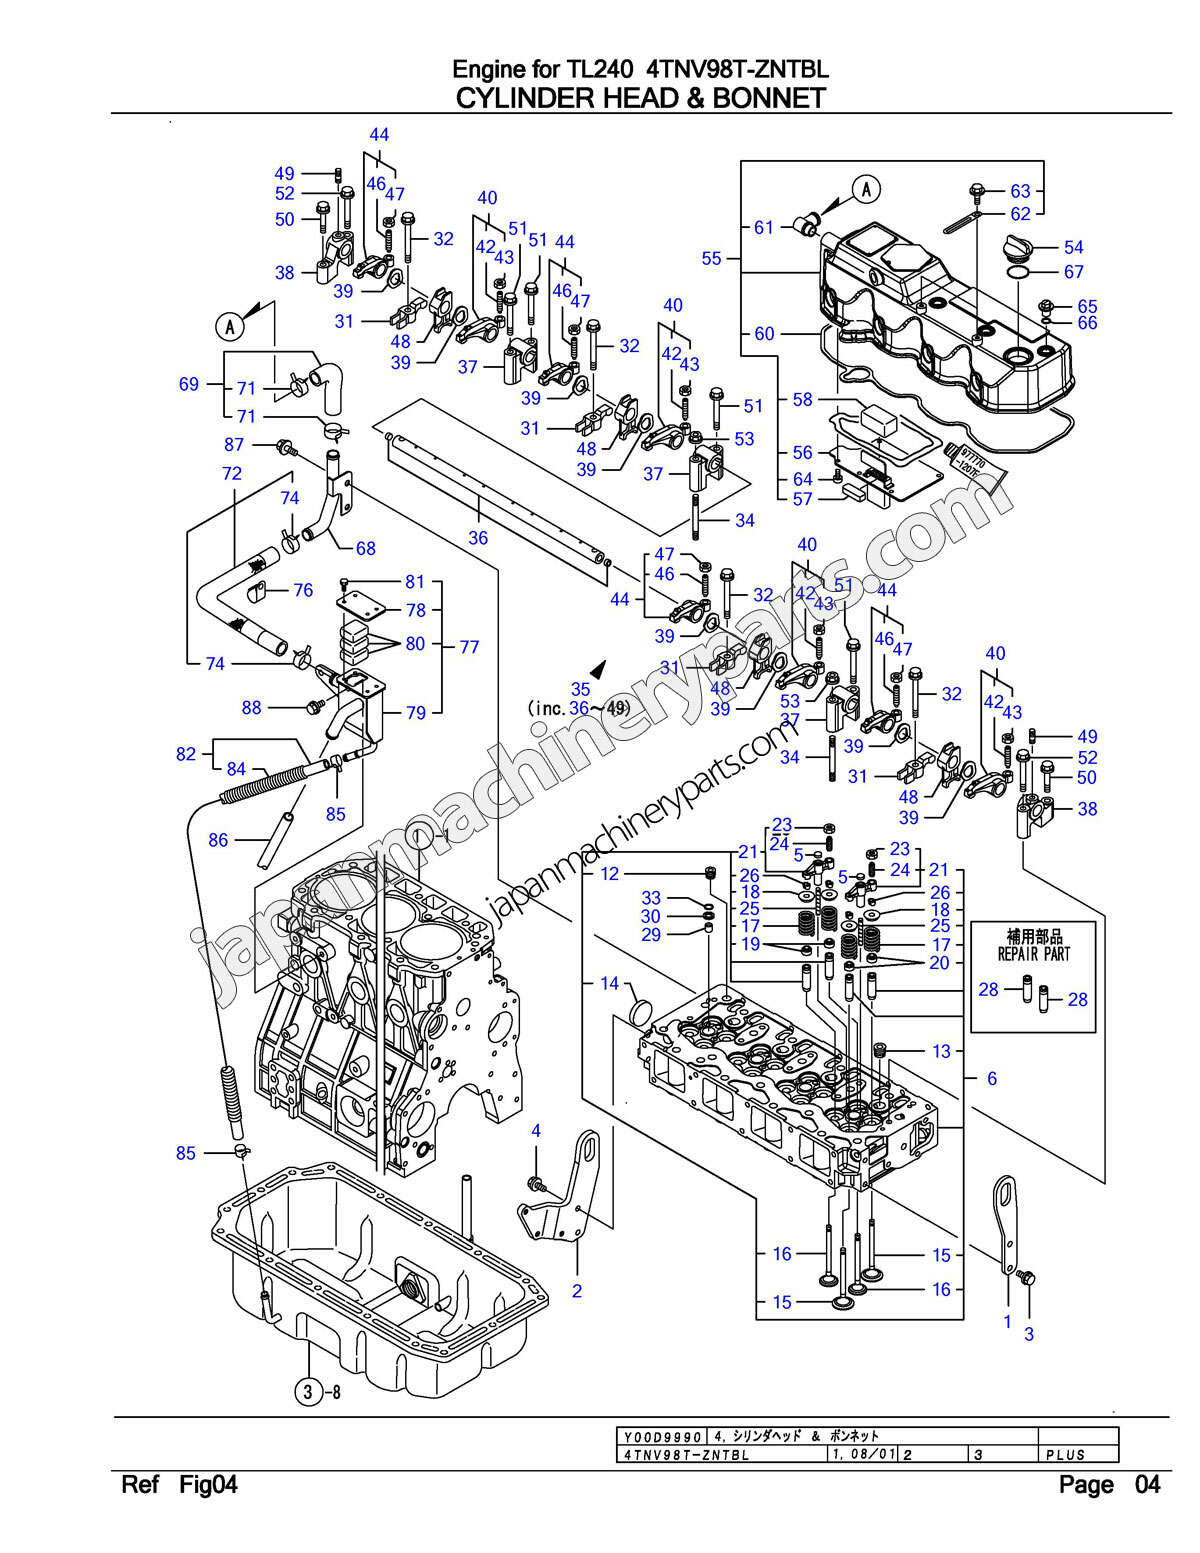 Parts for YANMAR 4TNV98T-ZNTBL